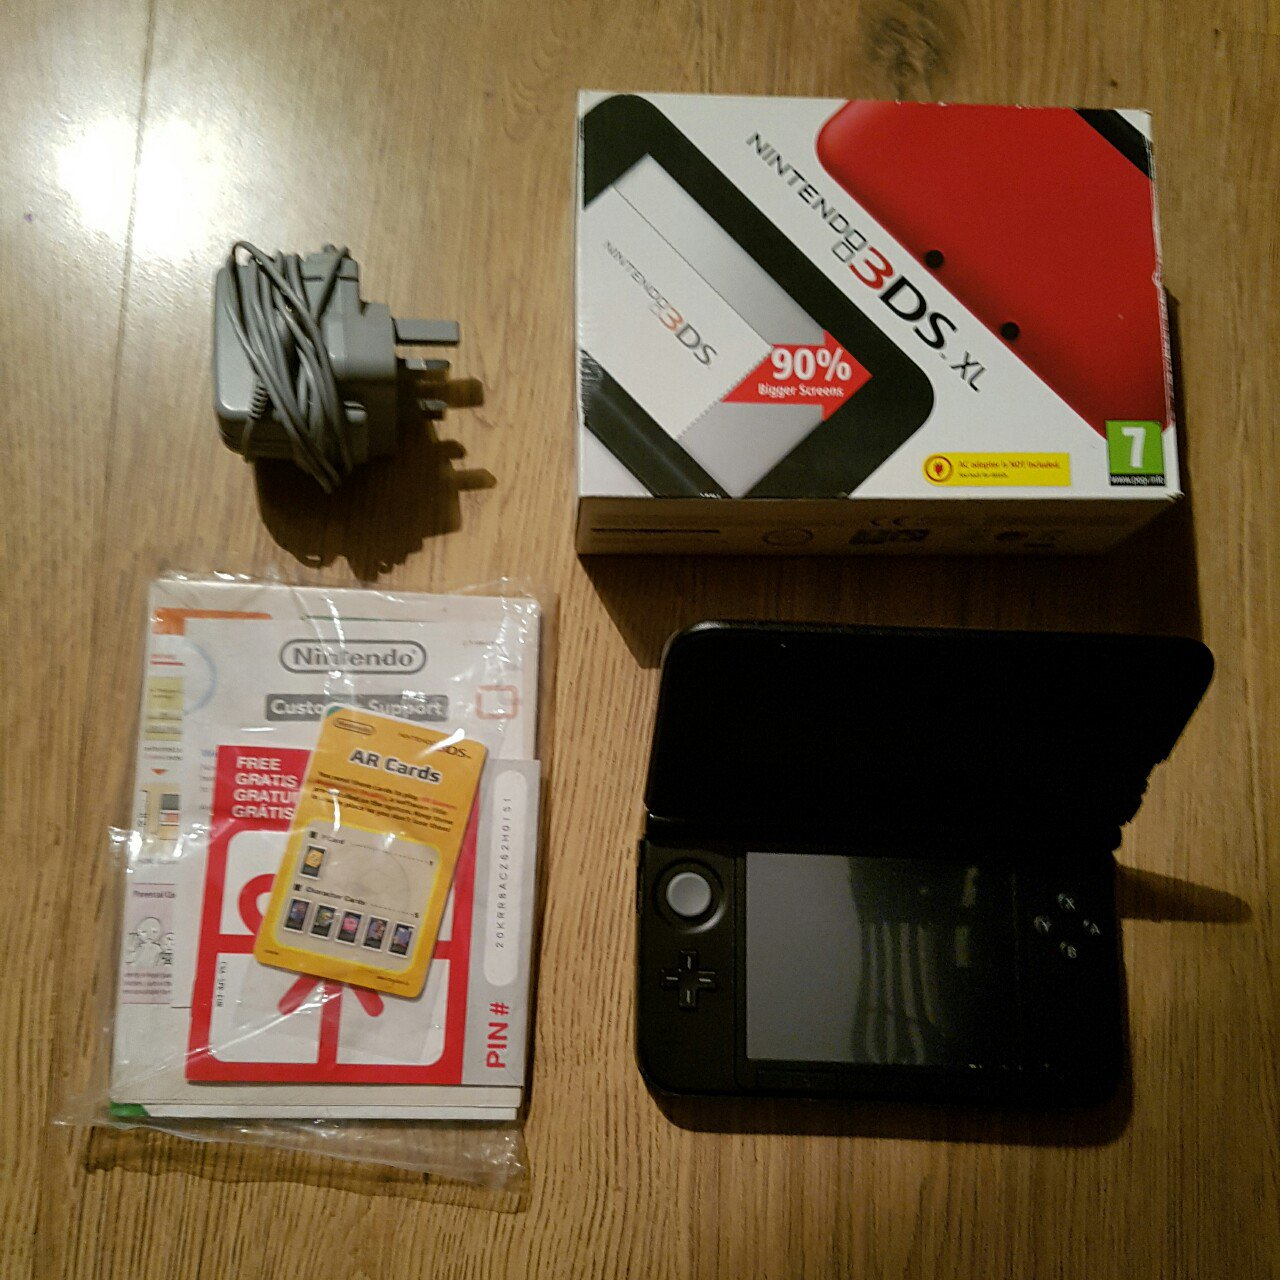 Nintendo 3ds Xl Mint Condition Included With Original Ar Depop